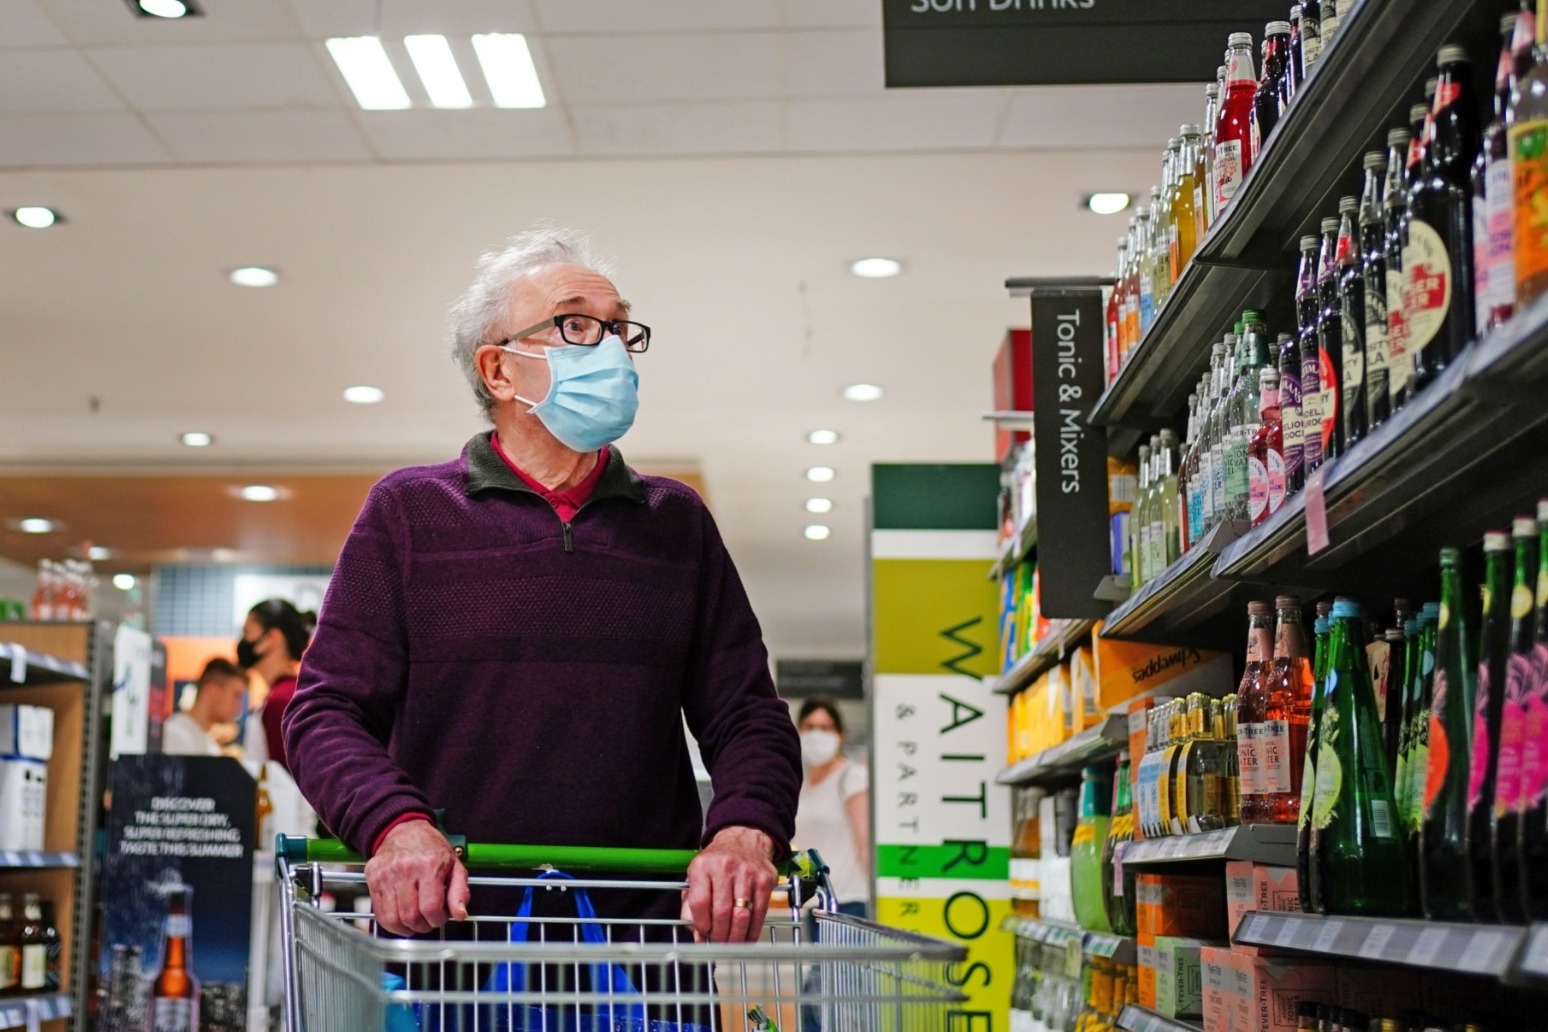 Supermarkets encourage customers to wear masks in shops after July 19